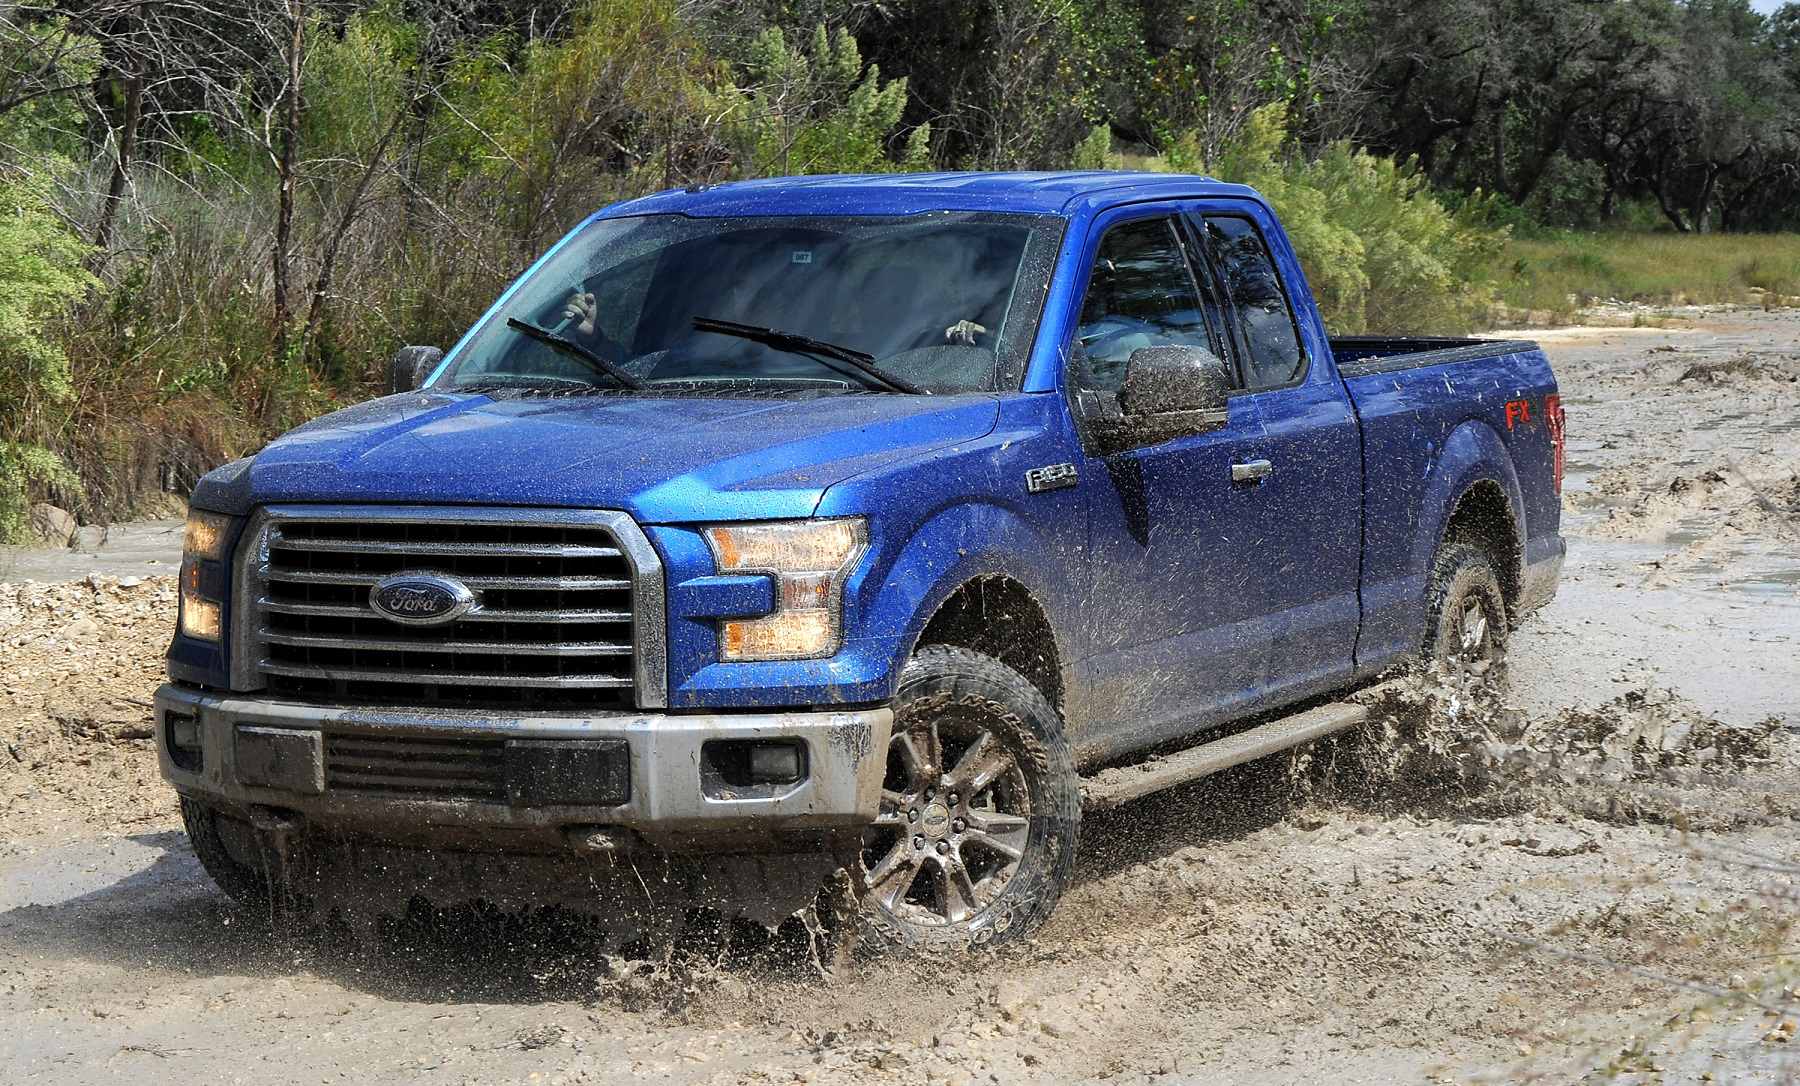 Manufacturer photo: The all-new 2015 Ford F-150 is the toughest, smartest and most capable F-150 ever -- setting the standard for the future of trucks